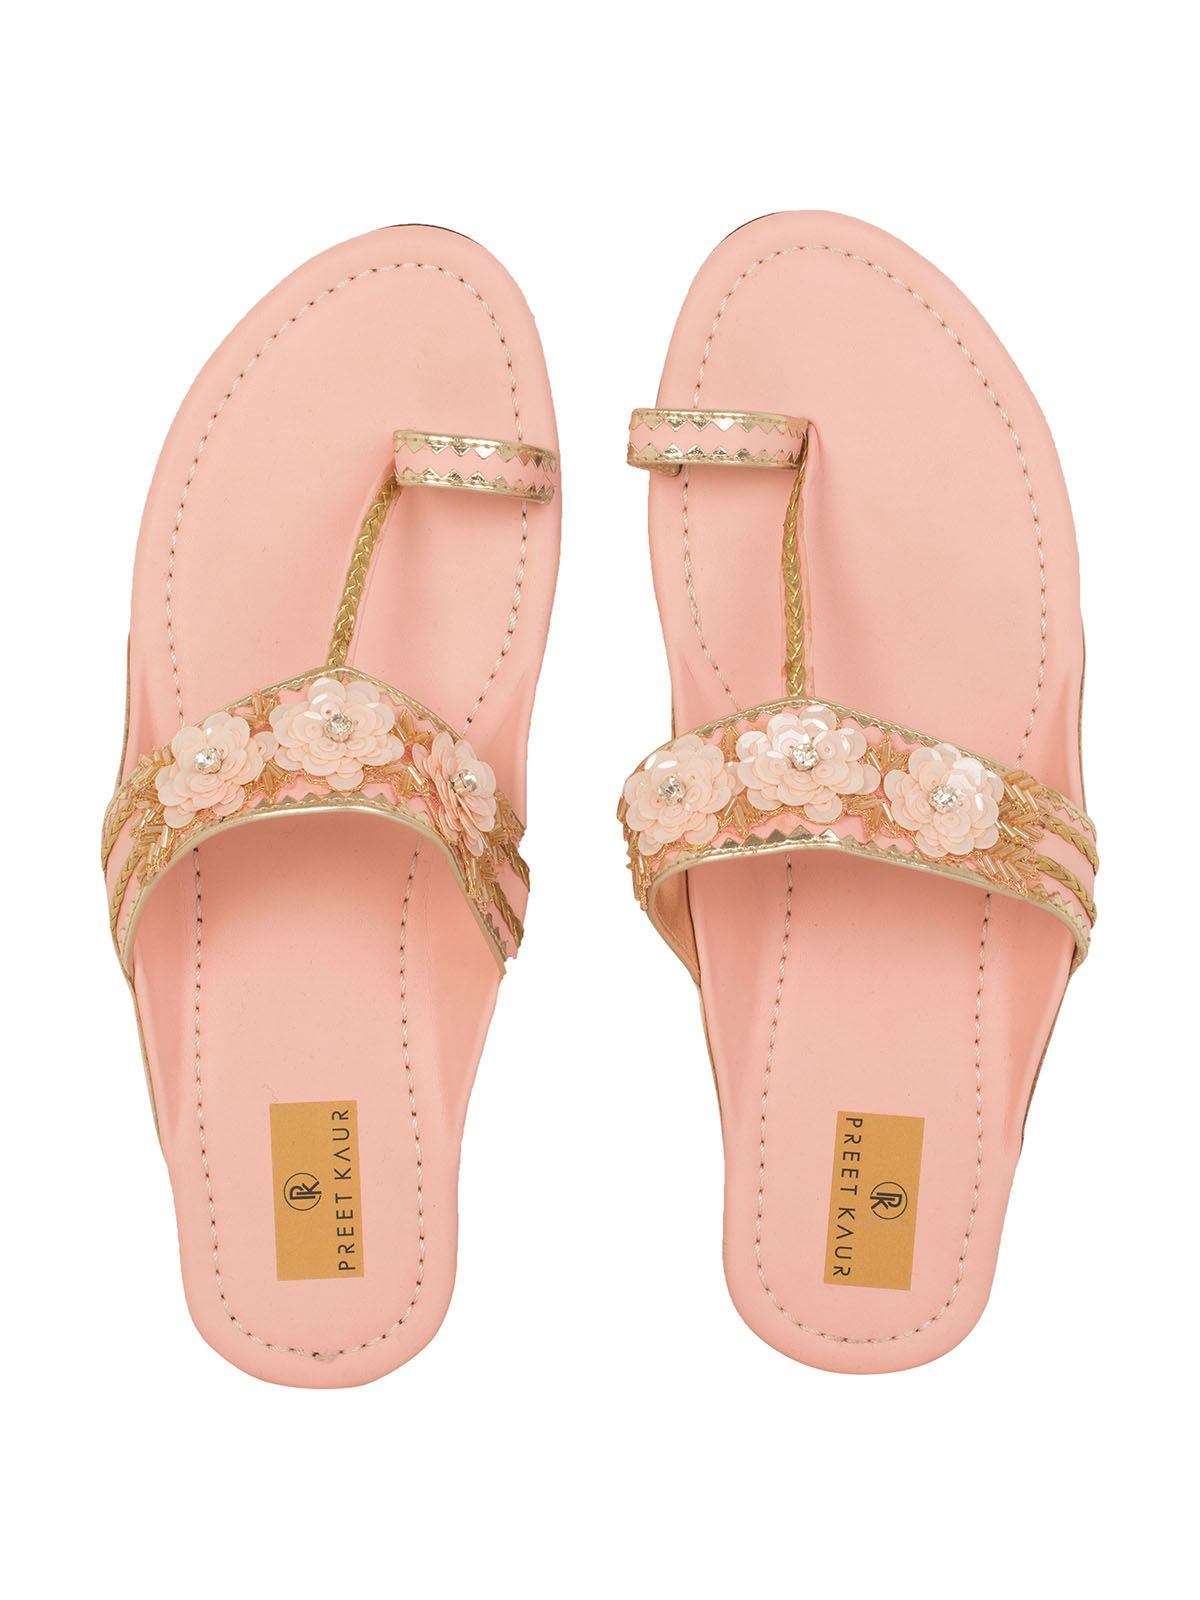 0f2613b8f Buy casual sandals from your favorite designer. Our ladies flat footwear  are extremely trendy right